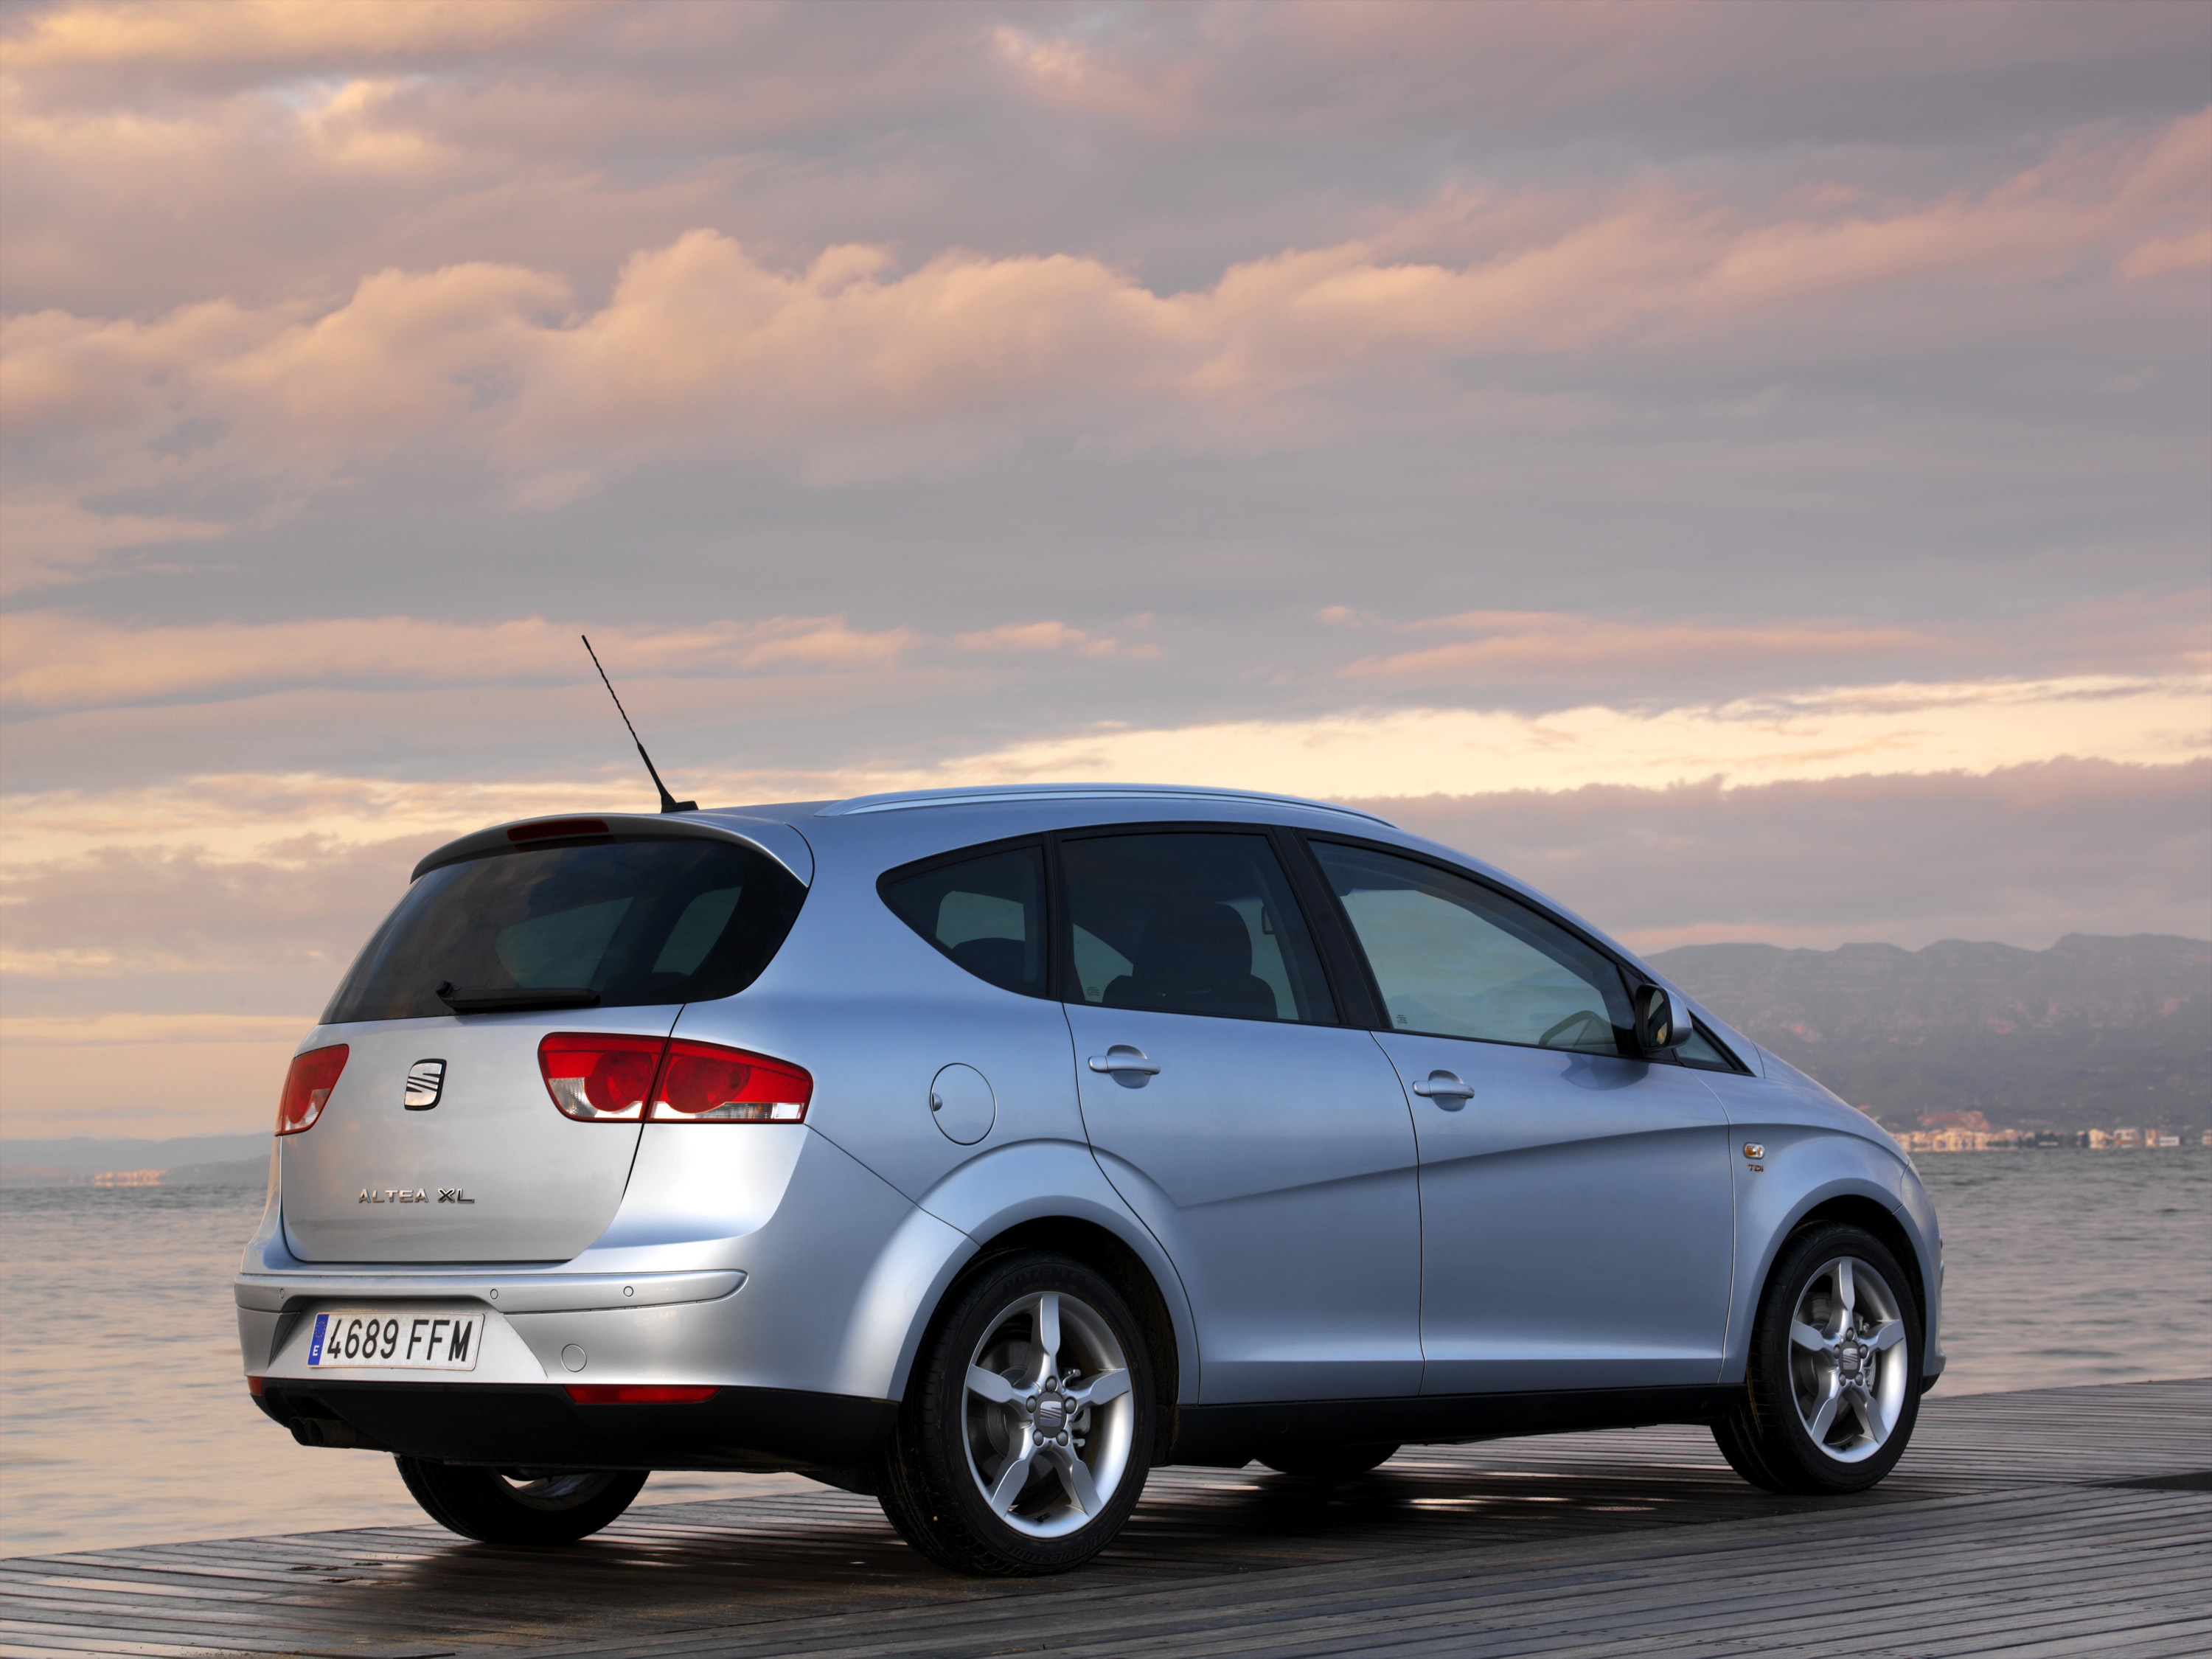 The Seat Altea Is One Of The Most Reliable Models On The